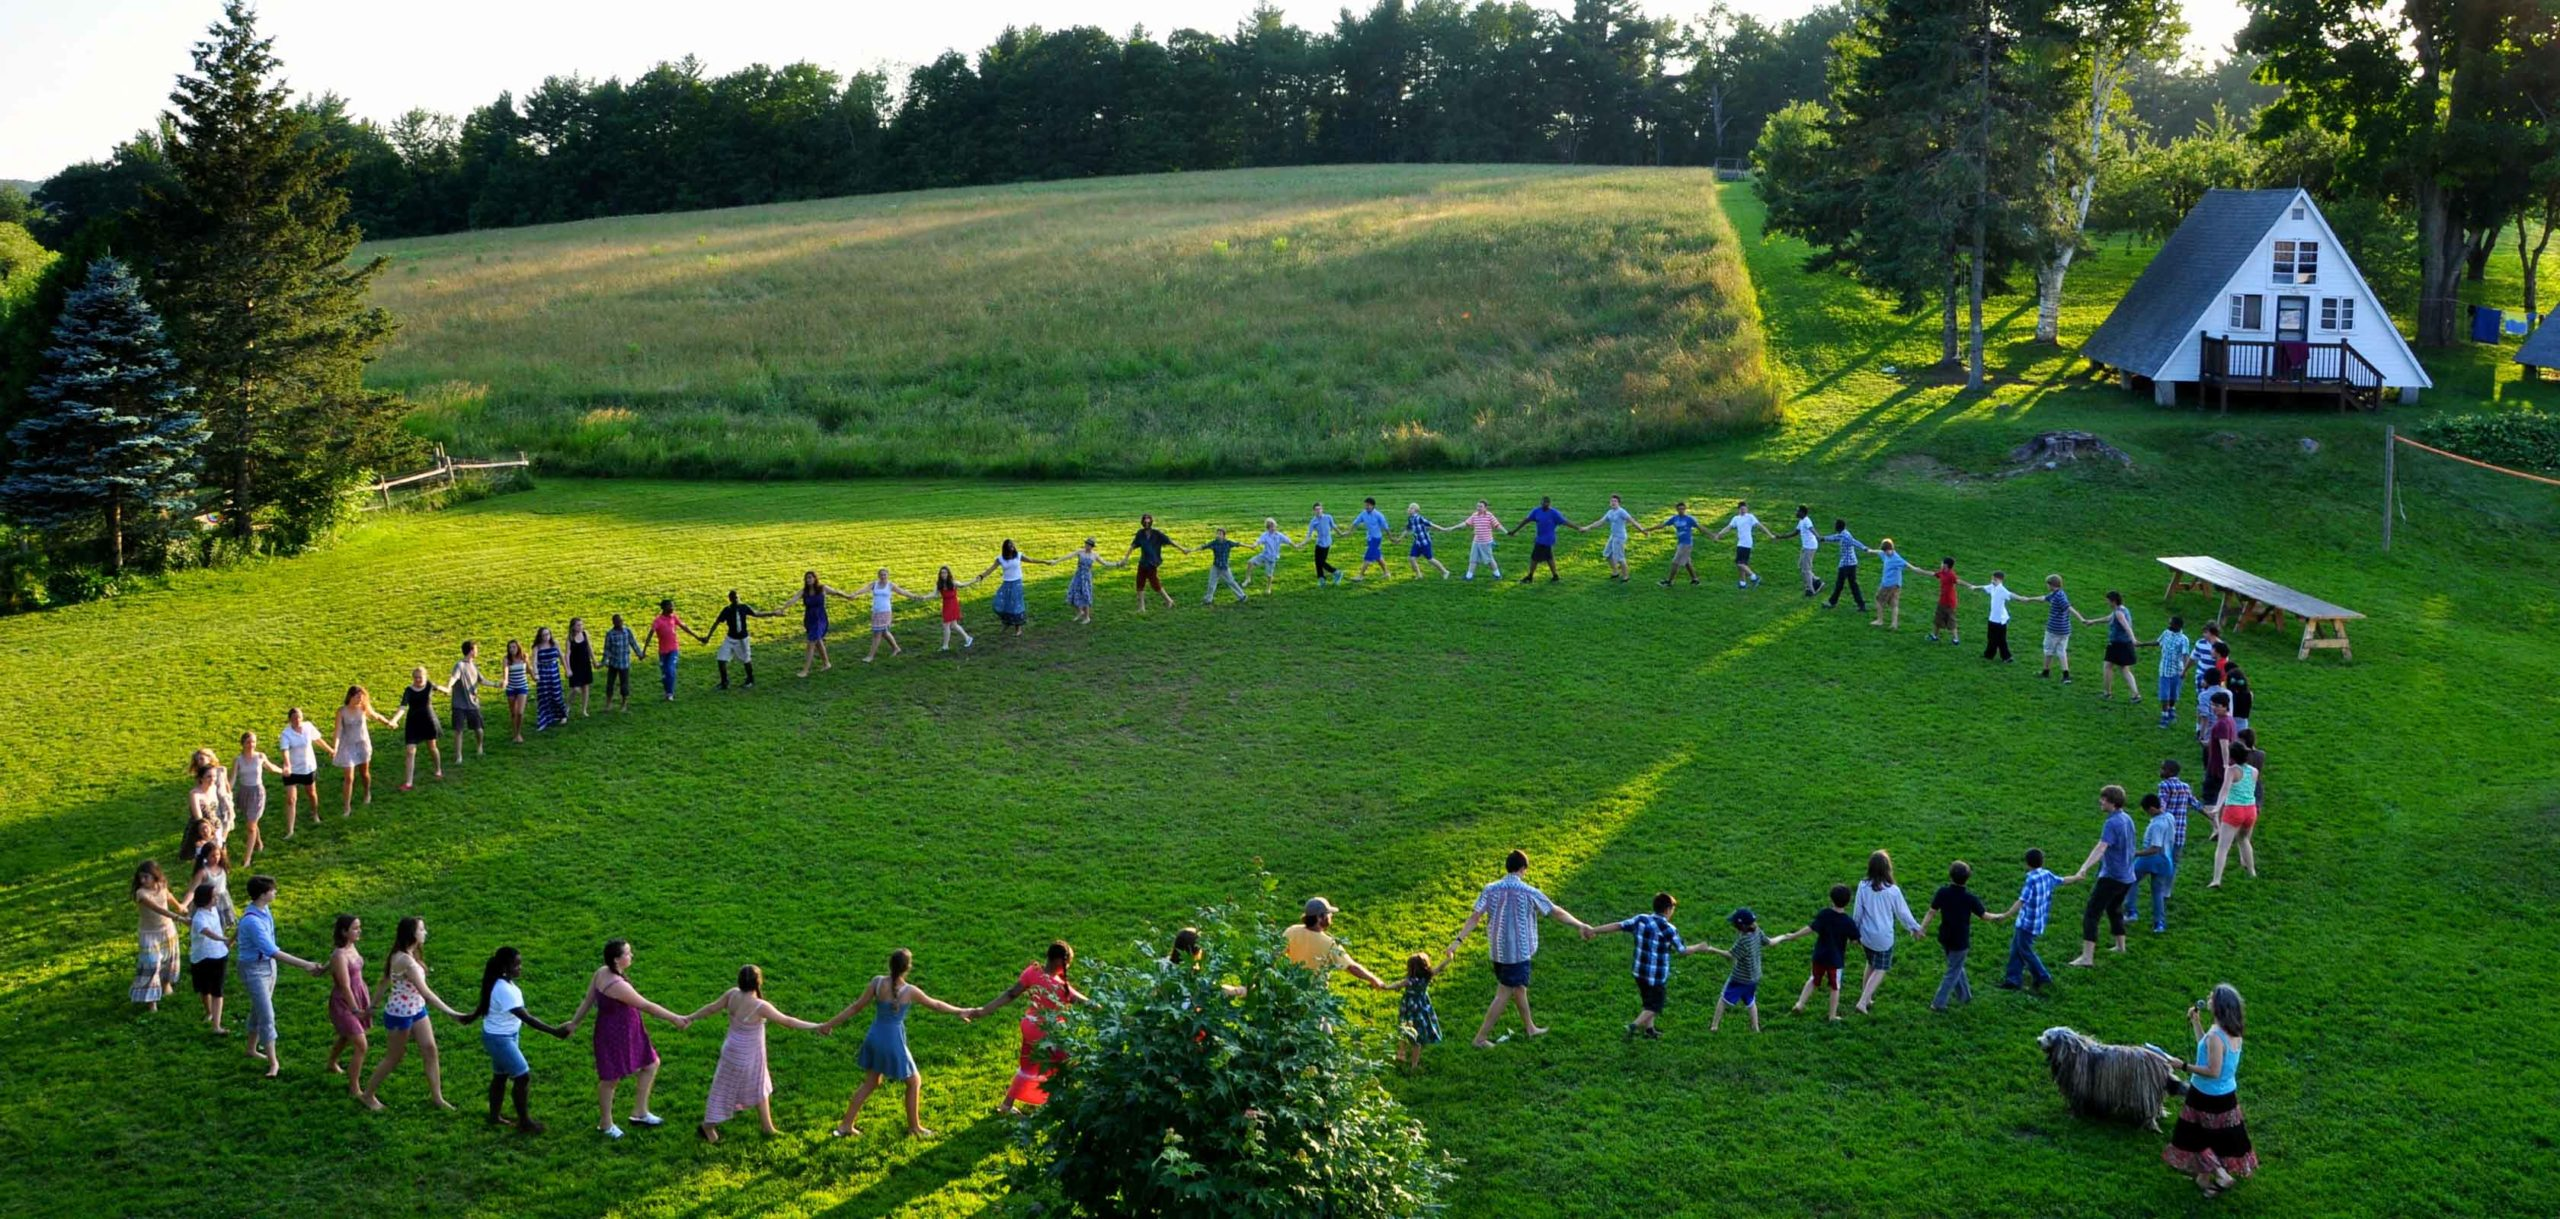 A view of people standing in a circle holding hands in a green field